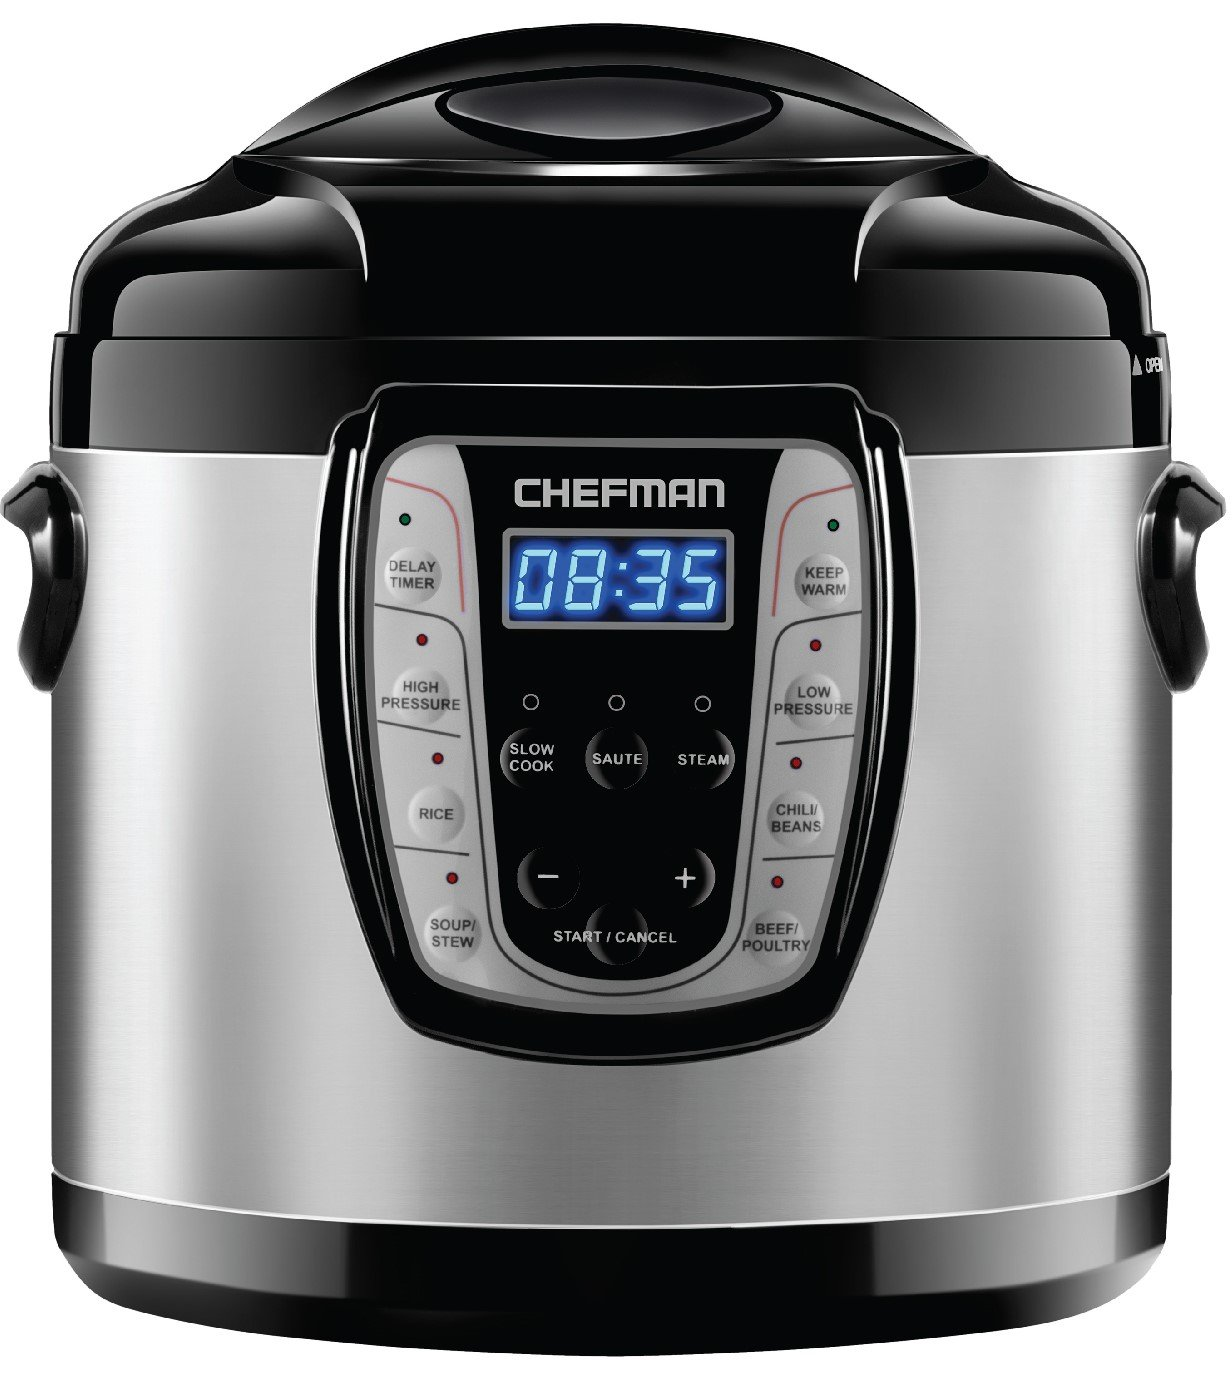 Chefman 6 Qt. Electric Multicooker, 9-in-1 Programmable Pressure Cooker, Prepare Dishes in an Instant, Aluminum Pot Multifunctional Slow Cooker, Rice Cooker/Steamer, Sauté, Soup Maker